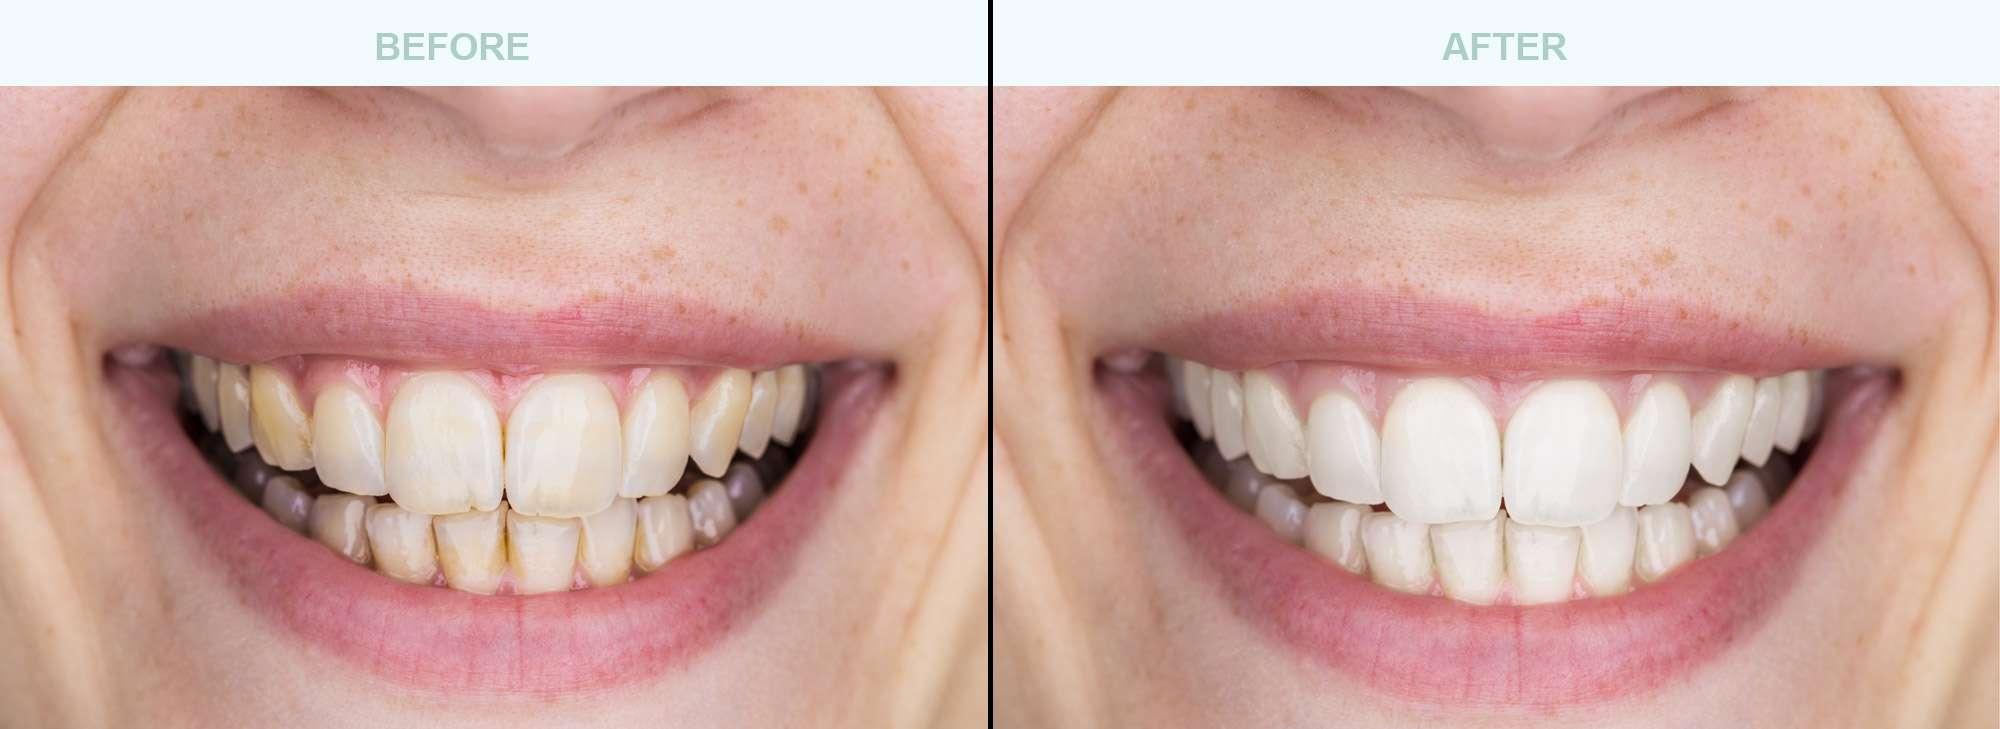 Dental-Cleaning-before-after